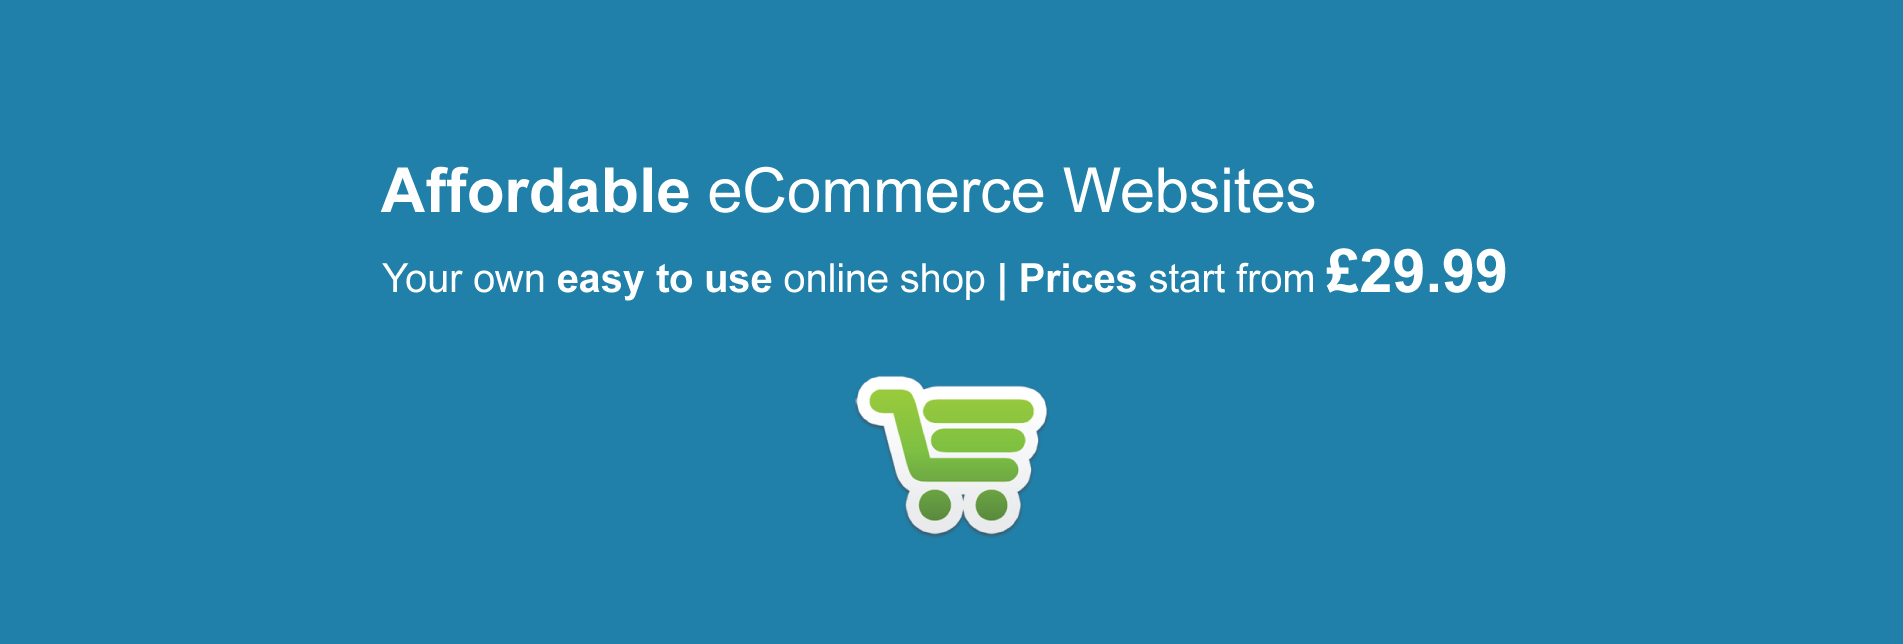 Cheap eCommerce Website Design